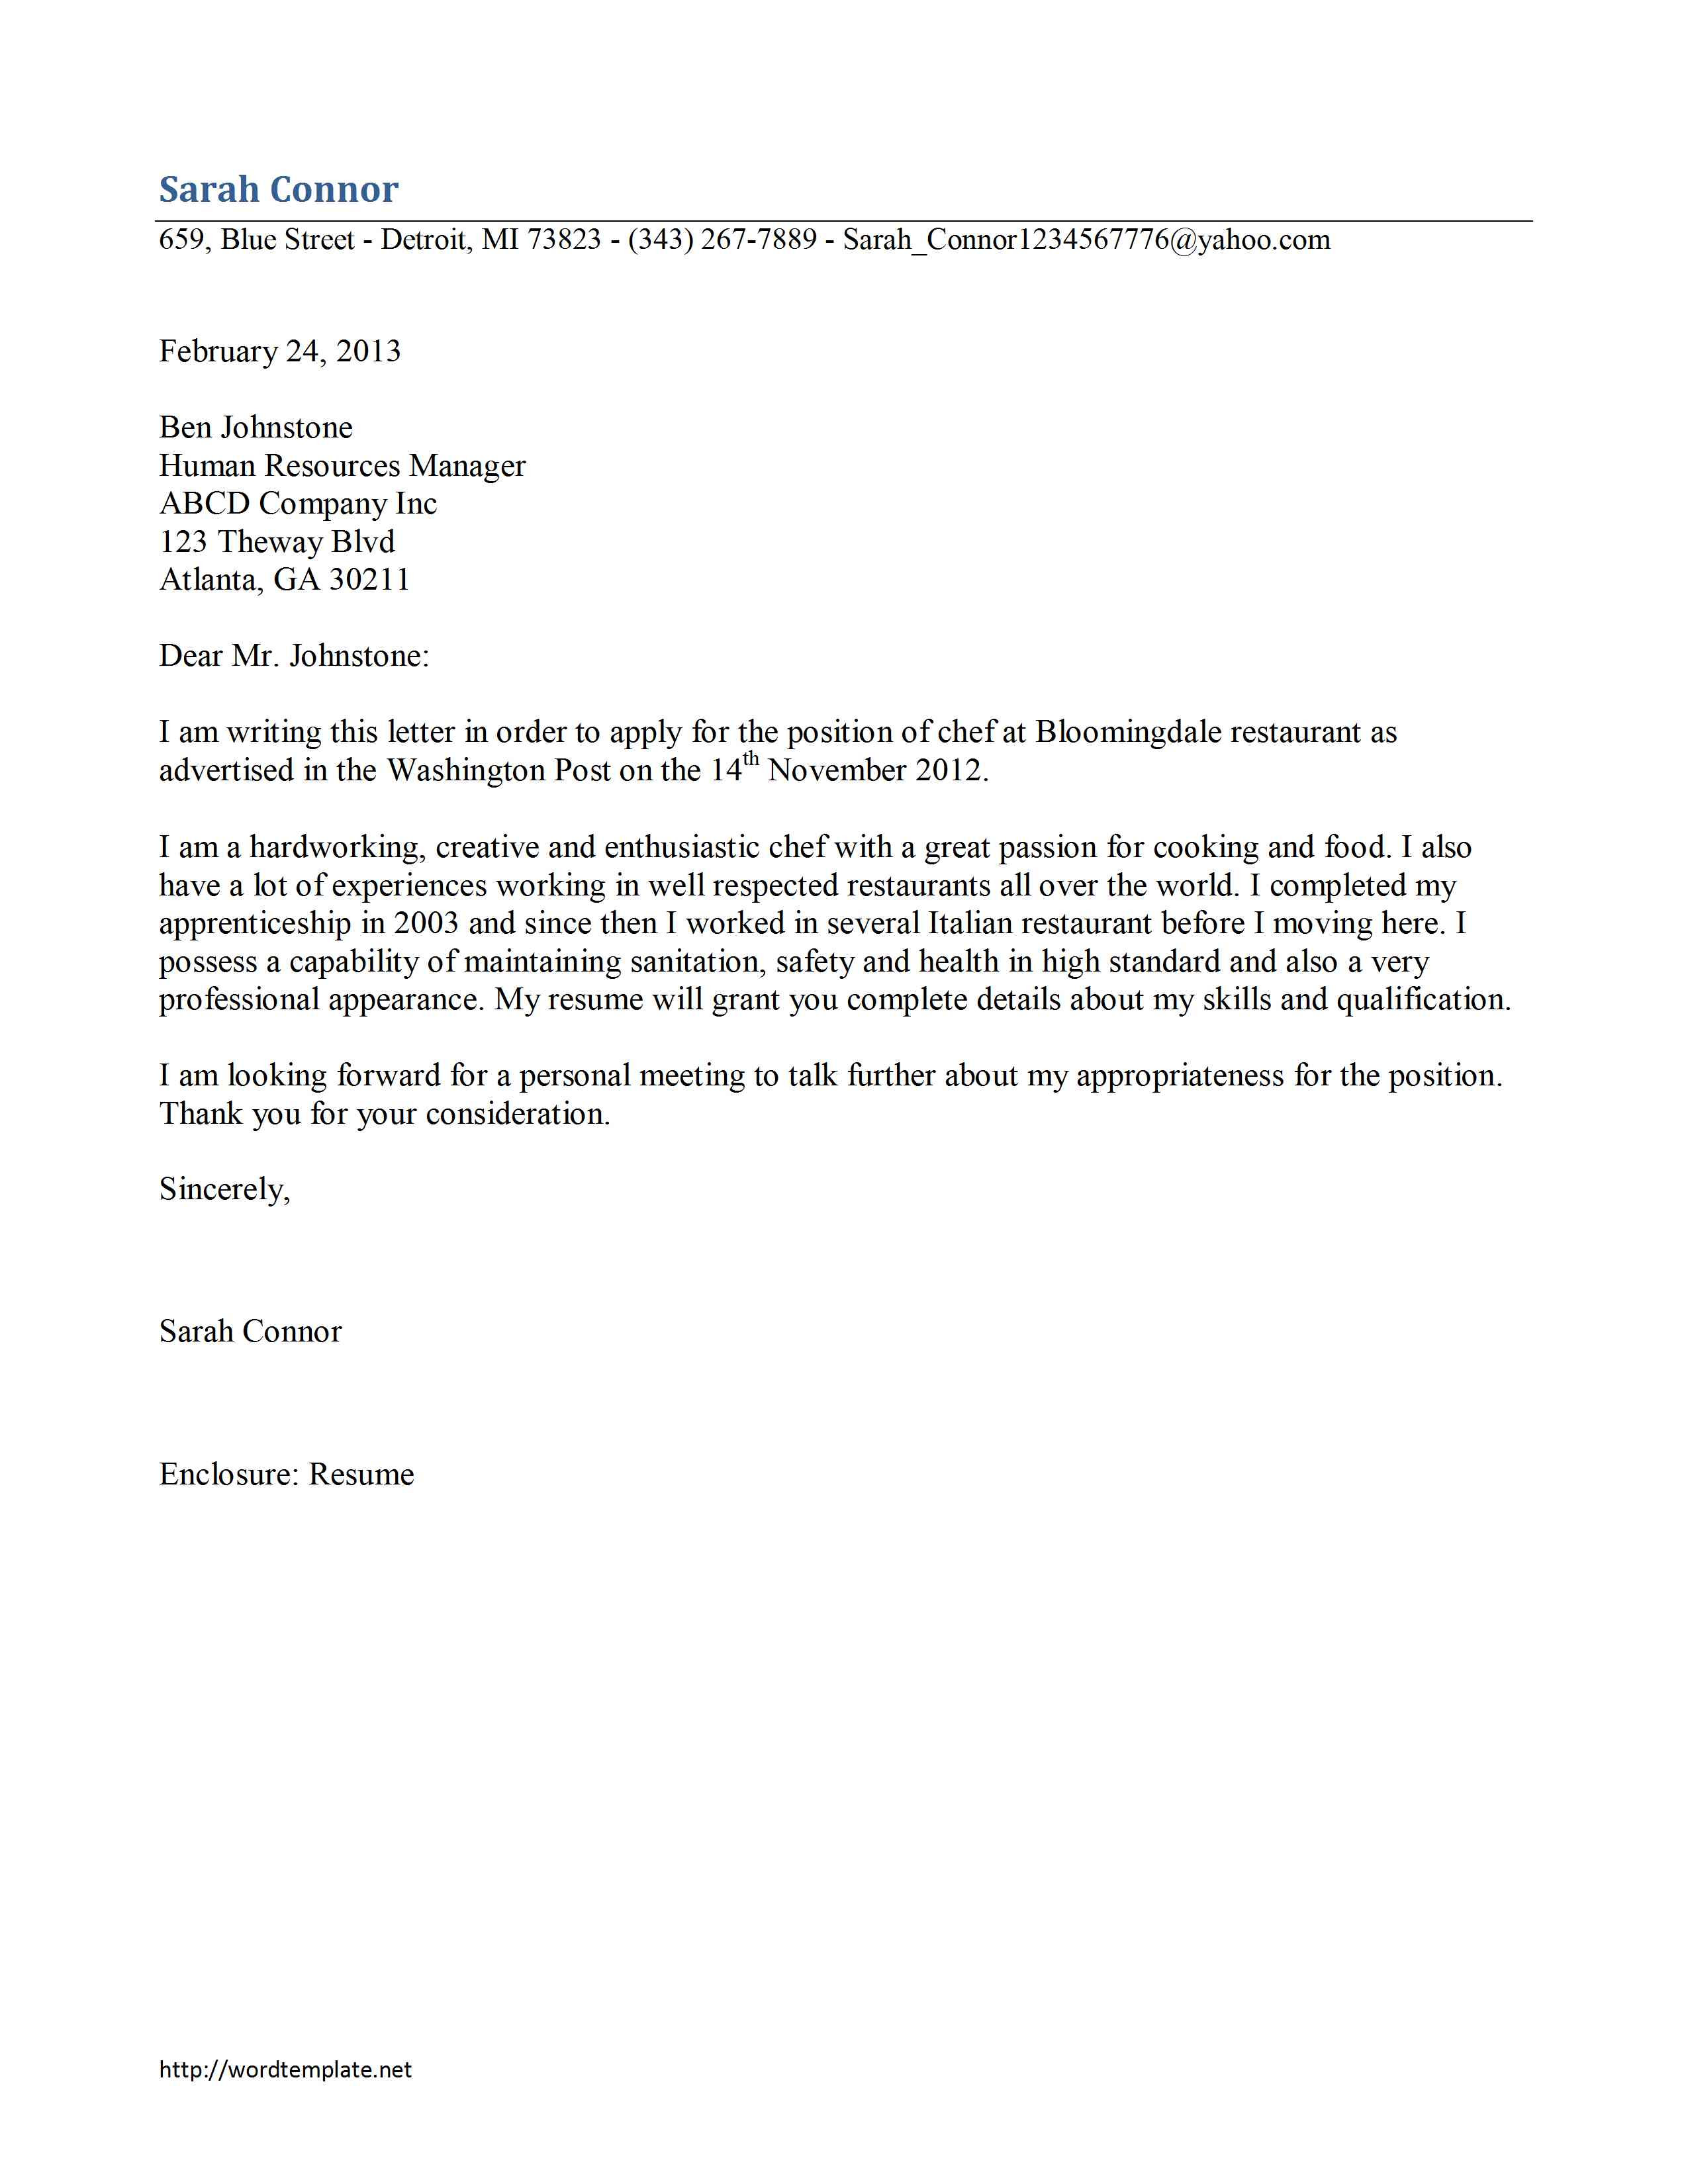 cover letter example  cover letter template microsoft word 2013